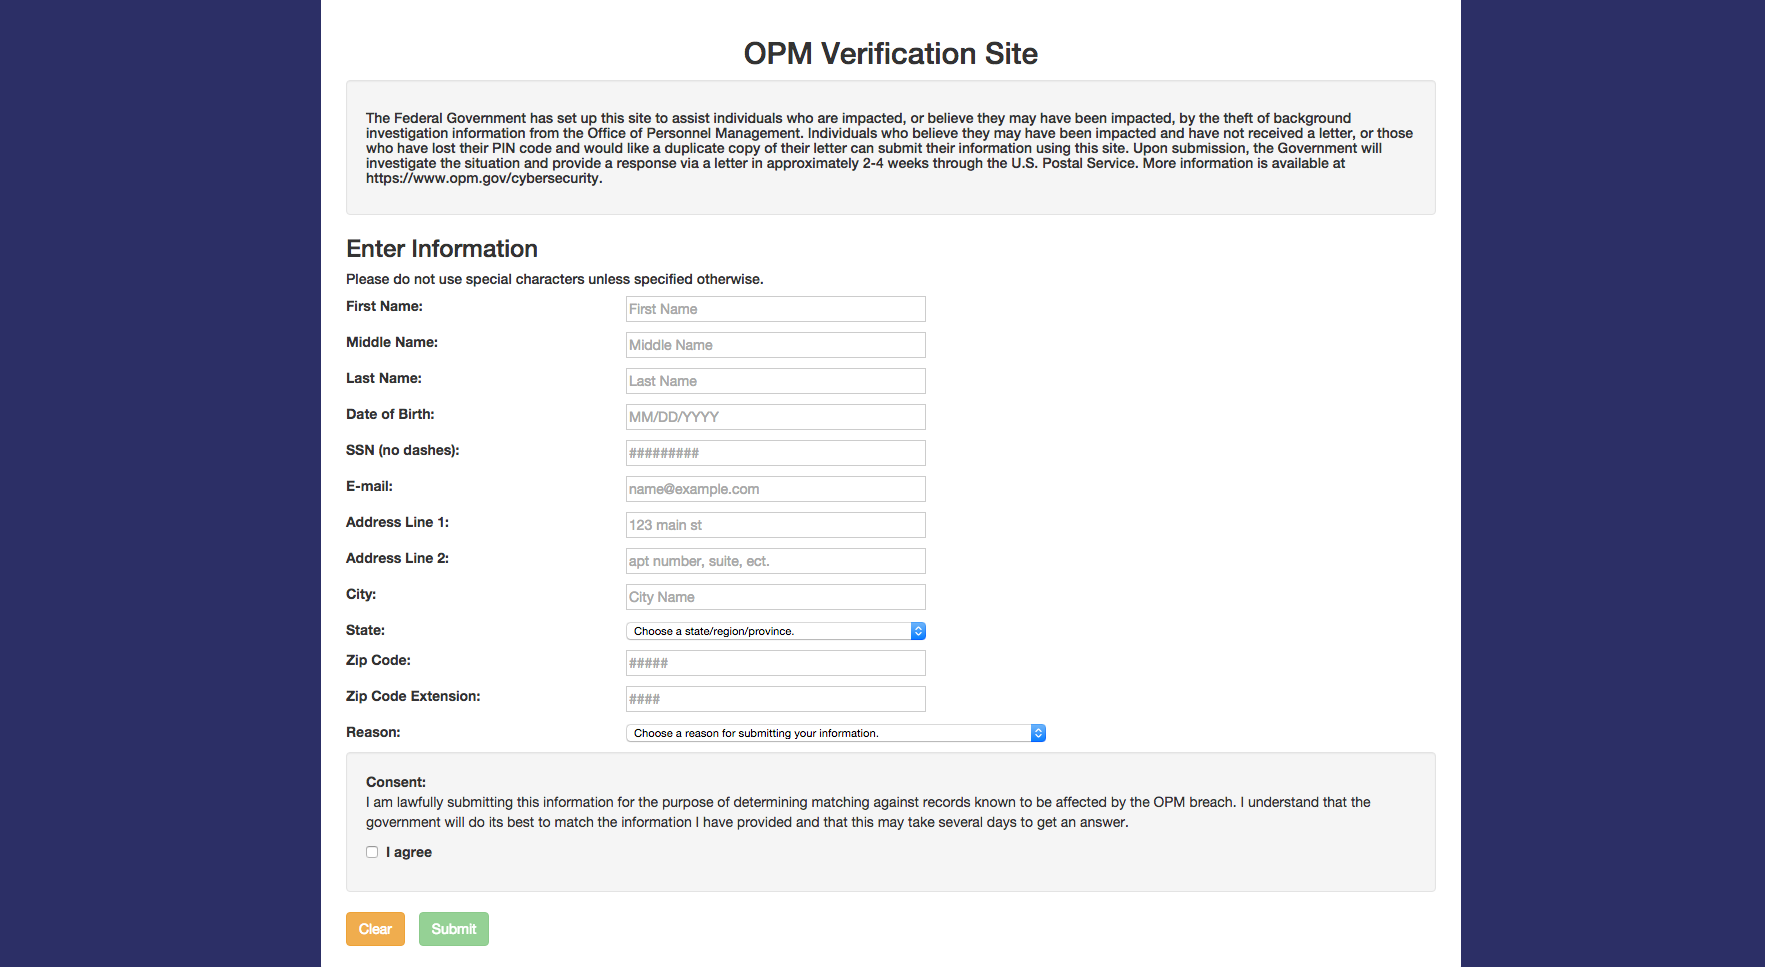 OPM form from the verification website.